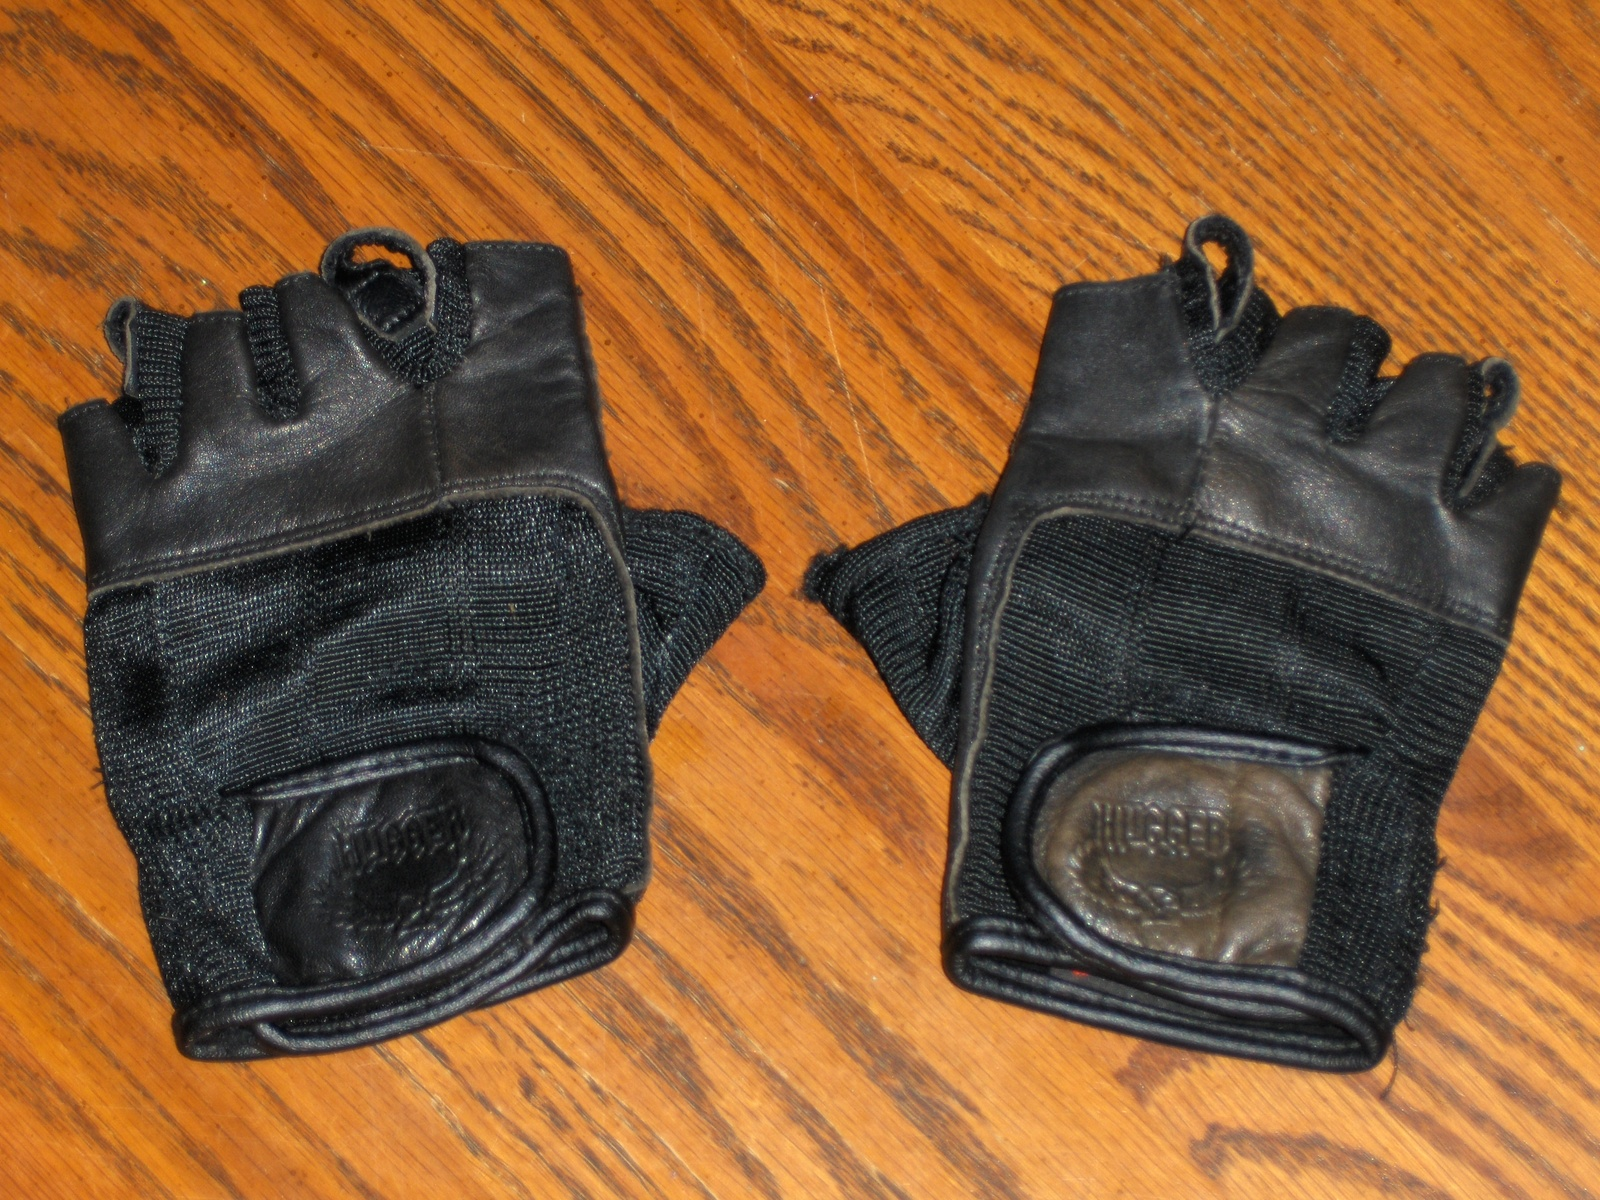 ... Gloves Fingerless Motorcycle Riding Gloves XS Womens - Gloves